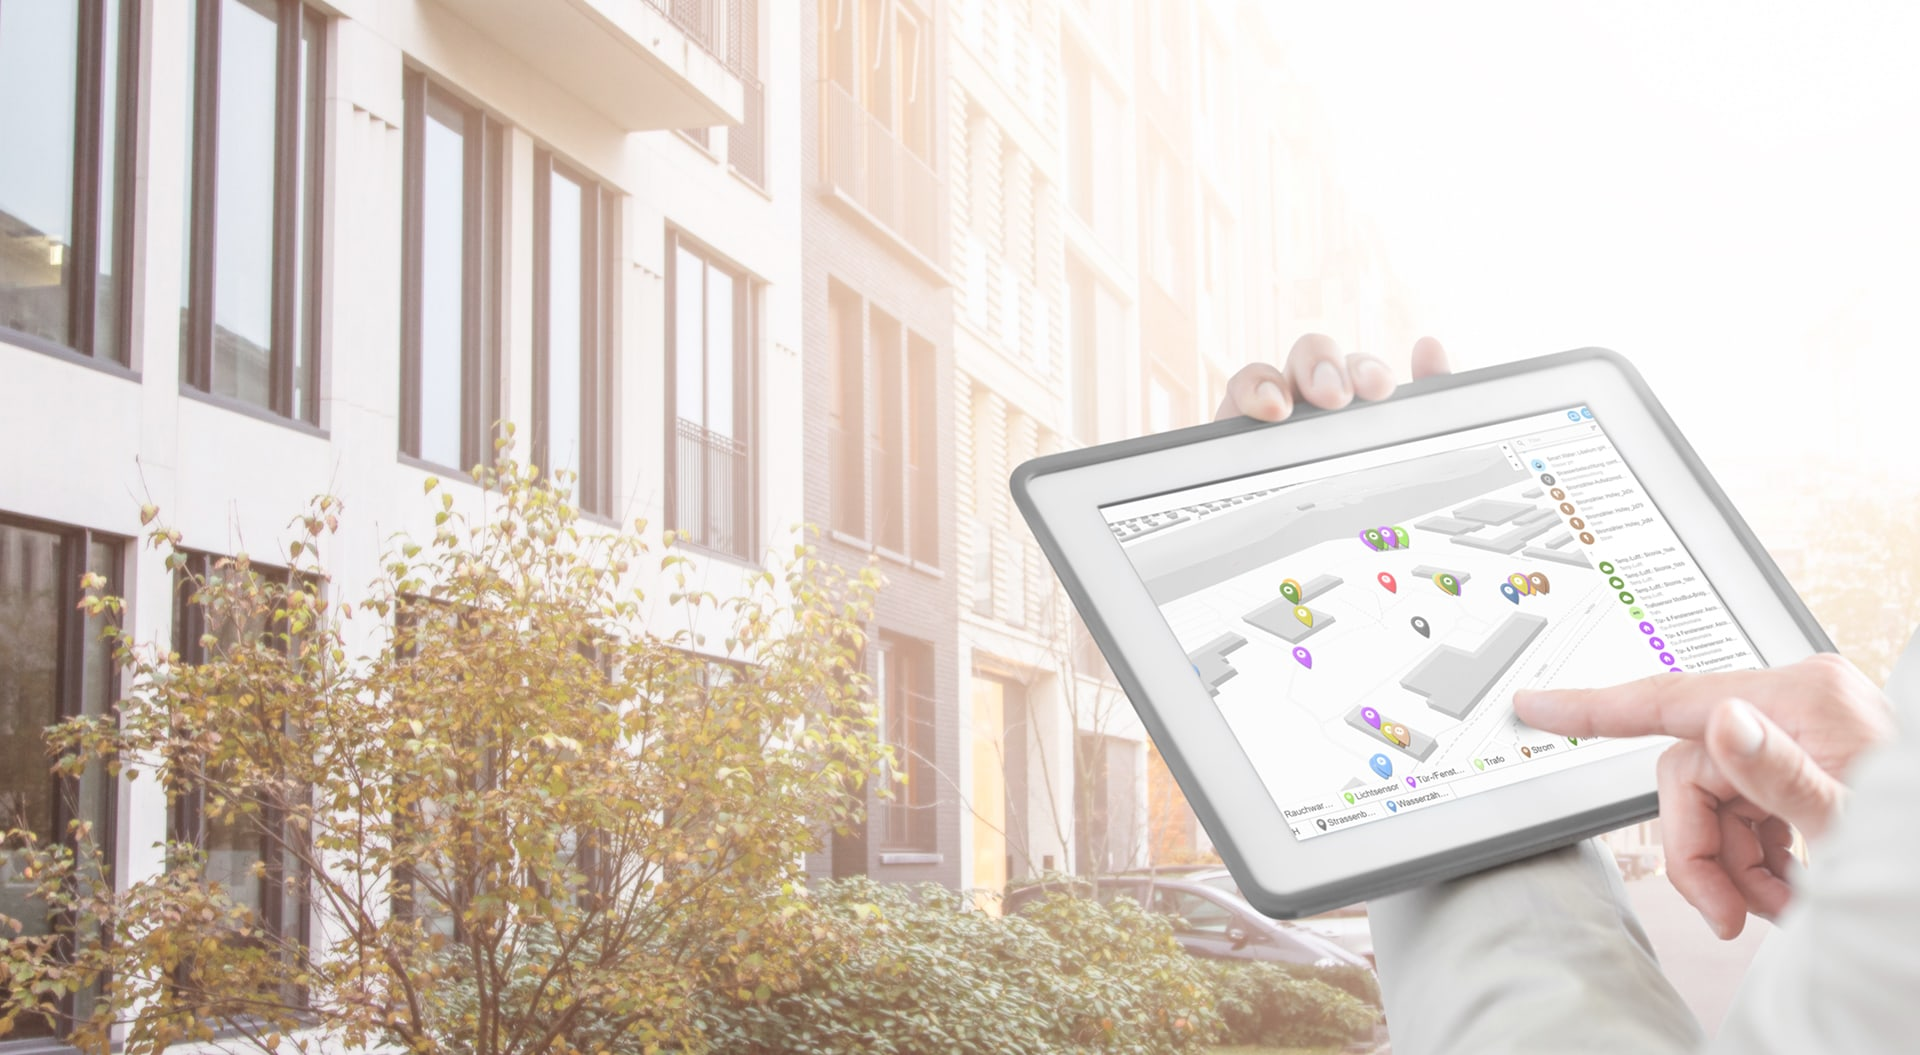 tablet with sensor visualisation in front of a building